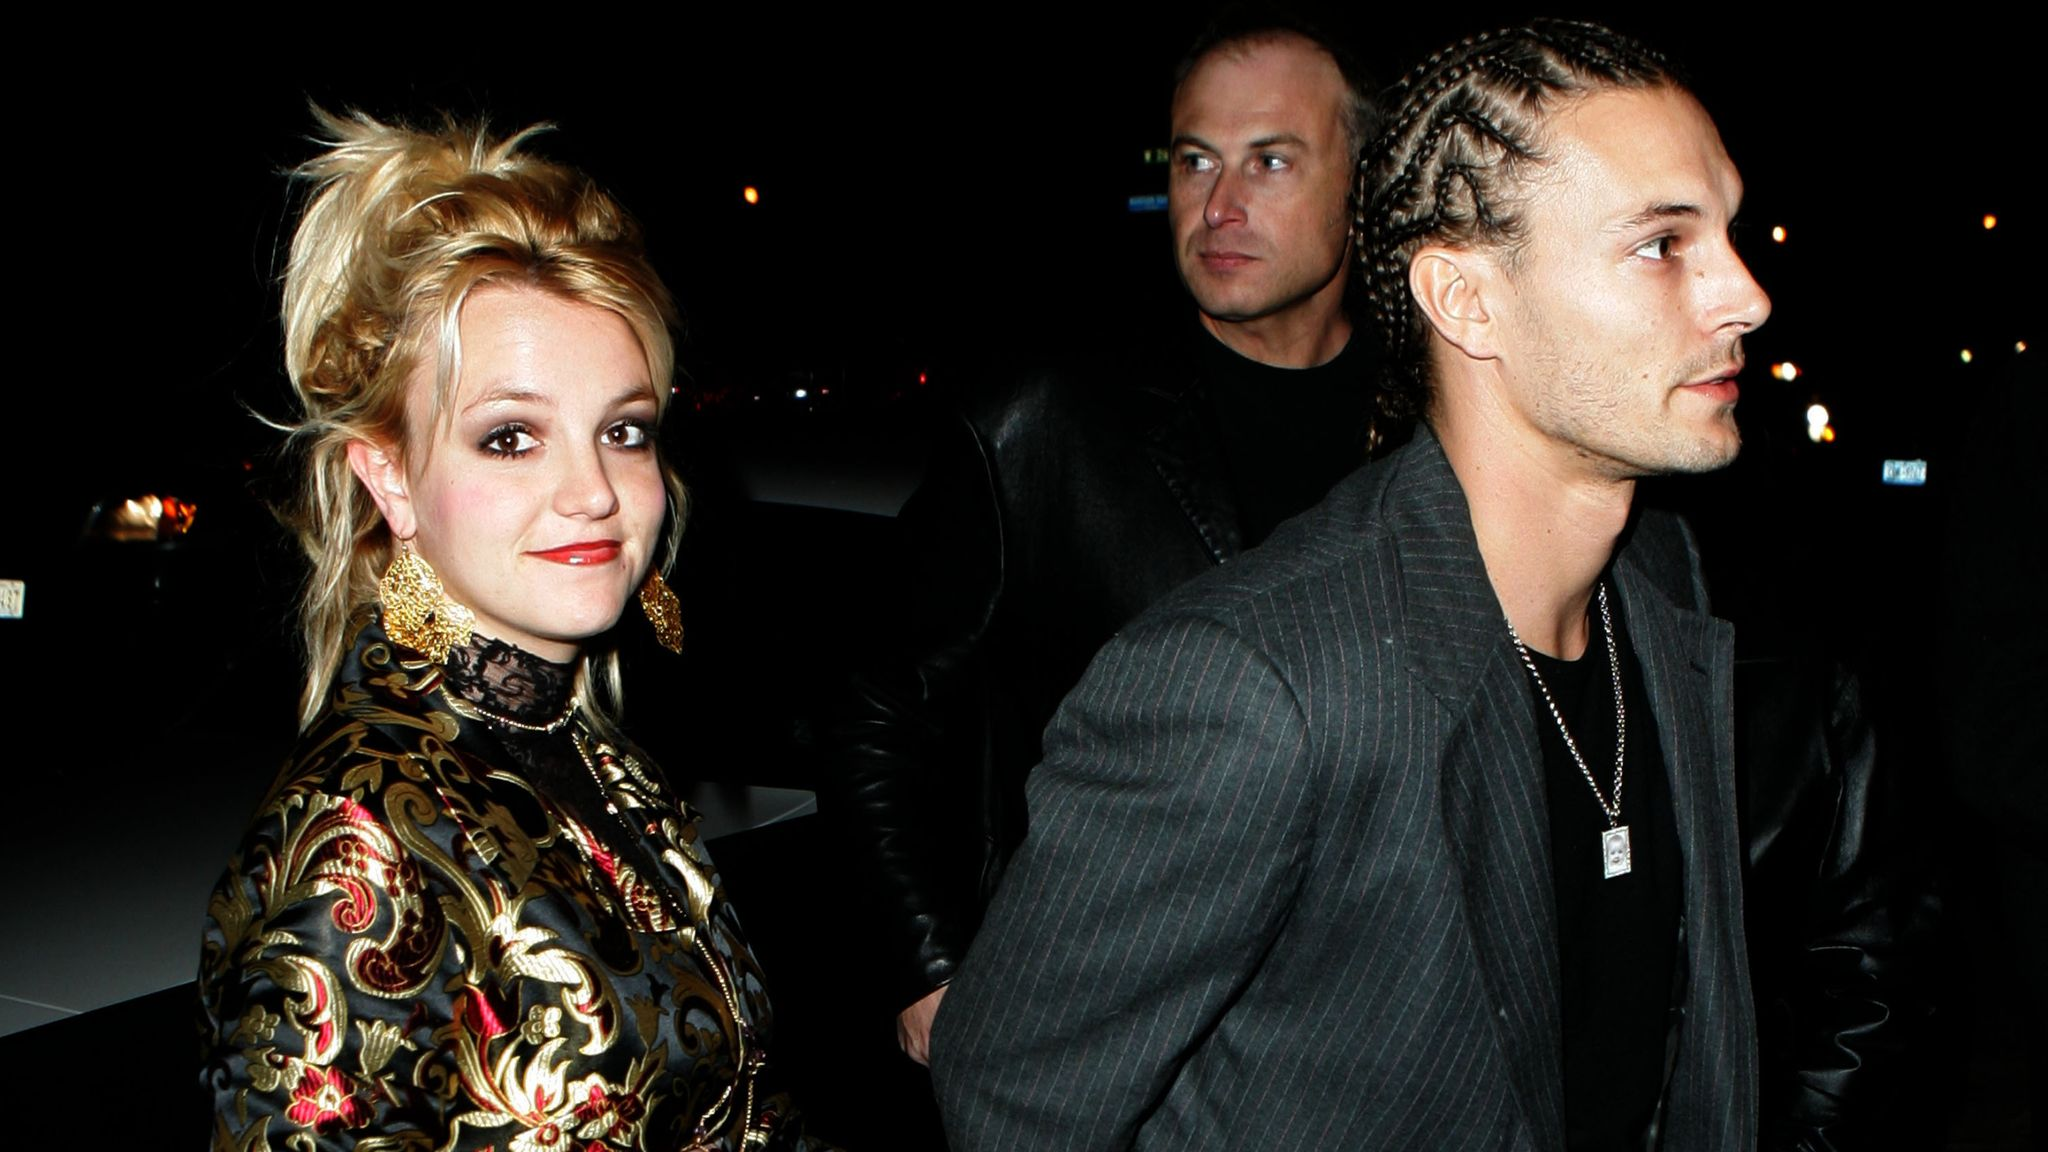 Britney Spears and Kevin Federline Sighting at Marquee in New York City - November 19, 2005